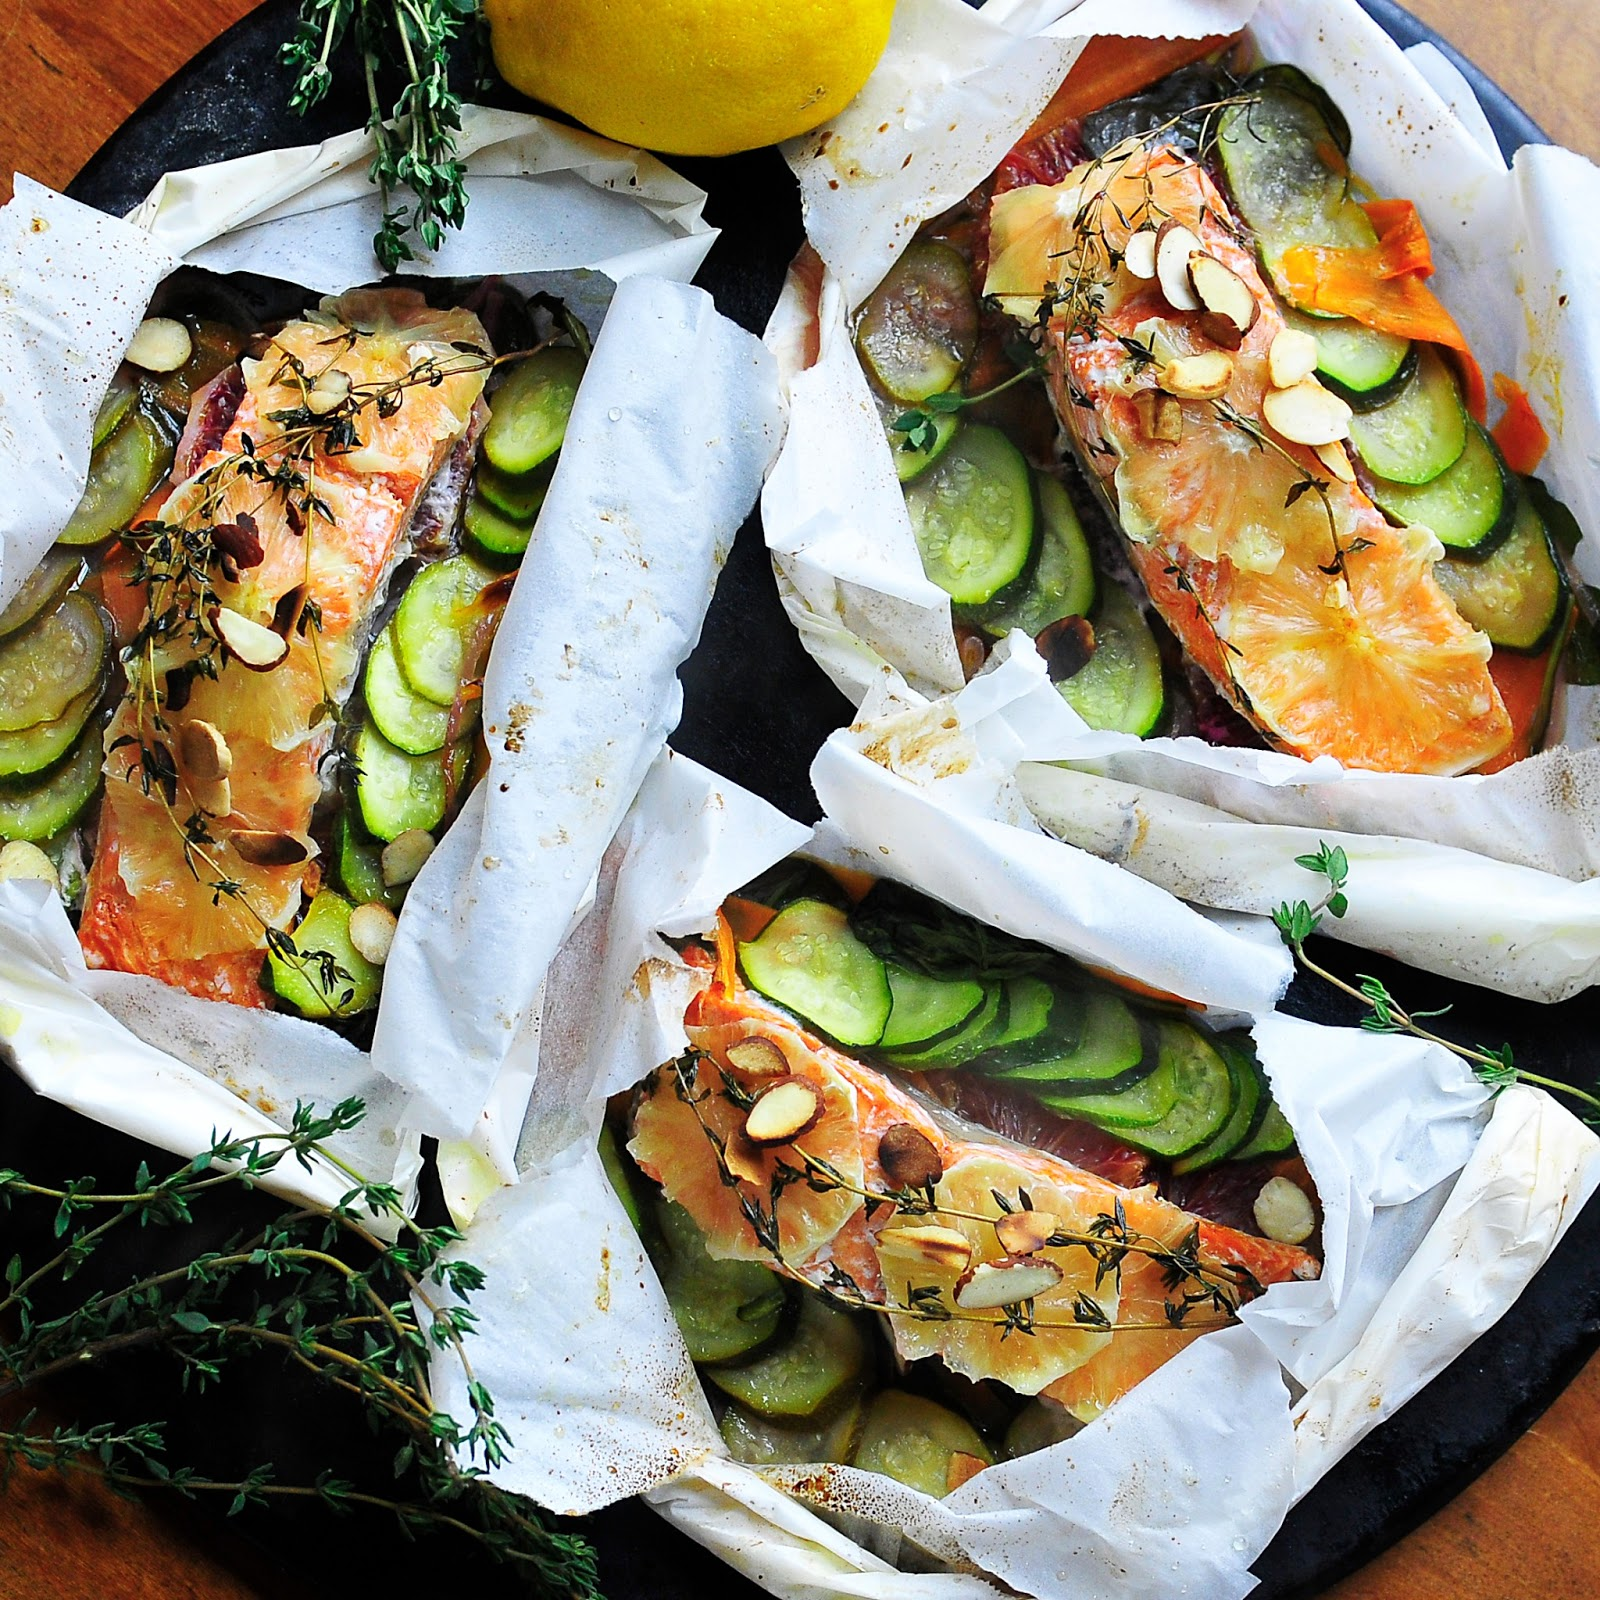 18. Parchment Poached Salmon with Thyme and Oranges